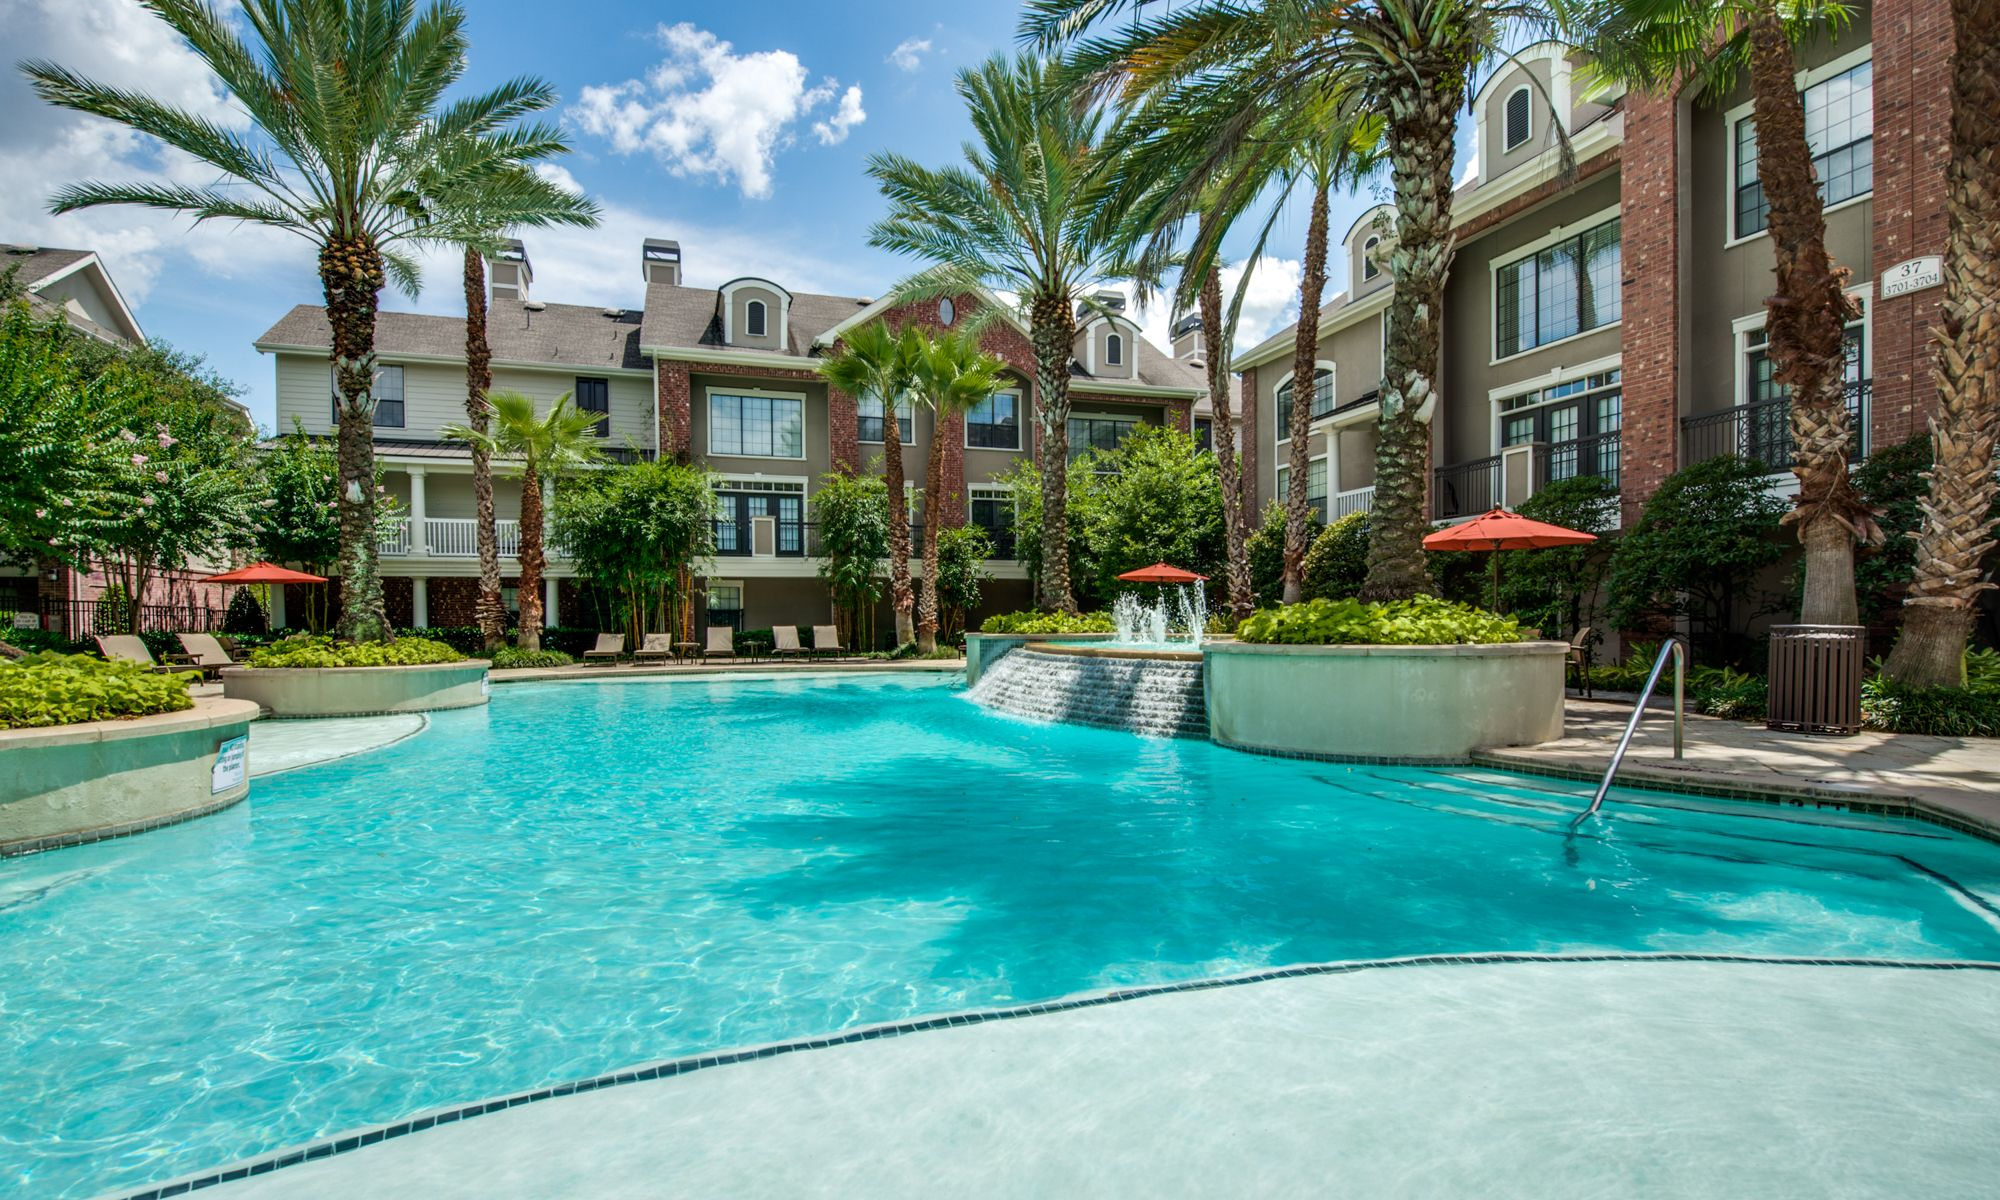 pool surrounded by palm trees and apartment buildings